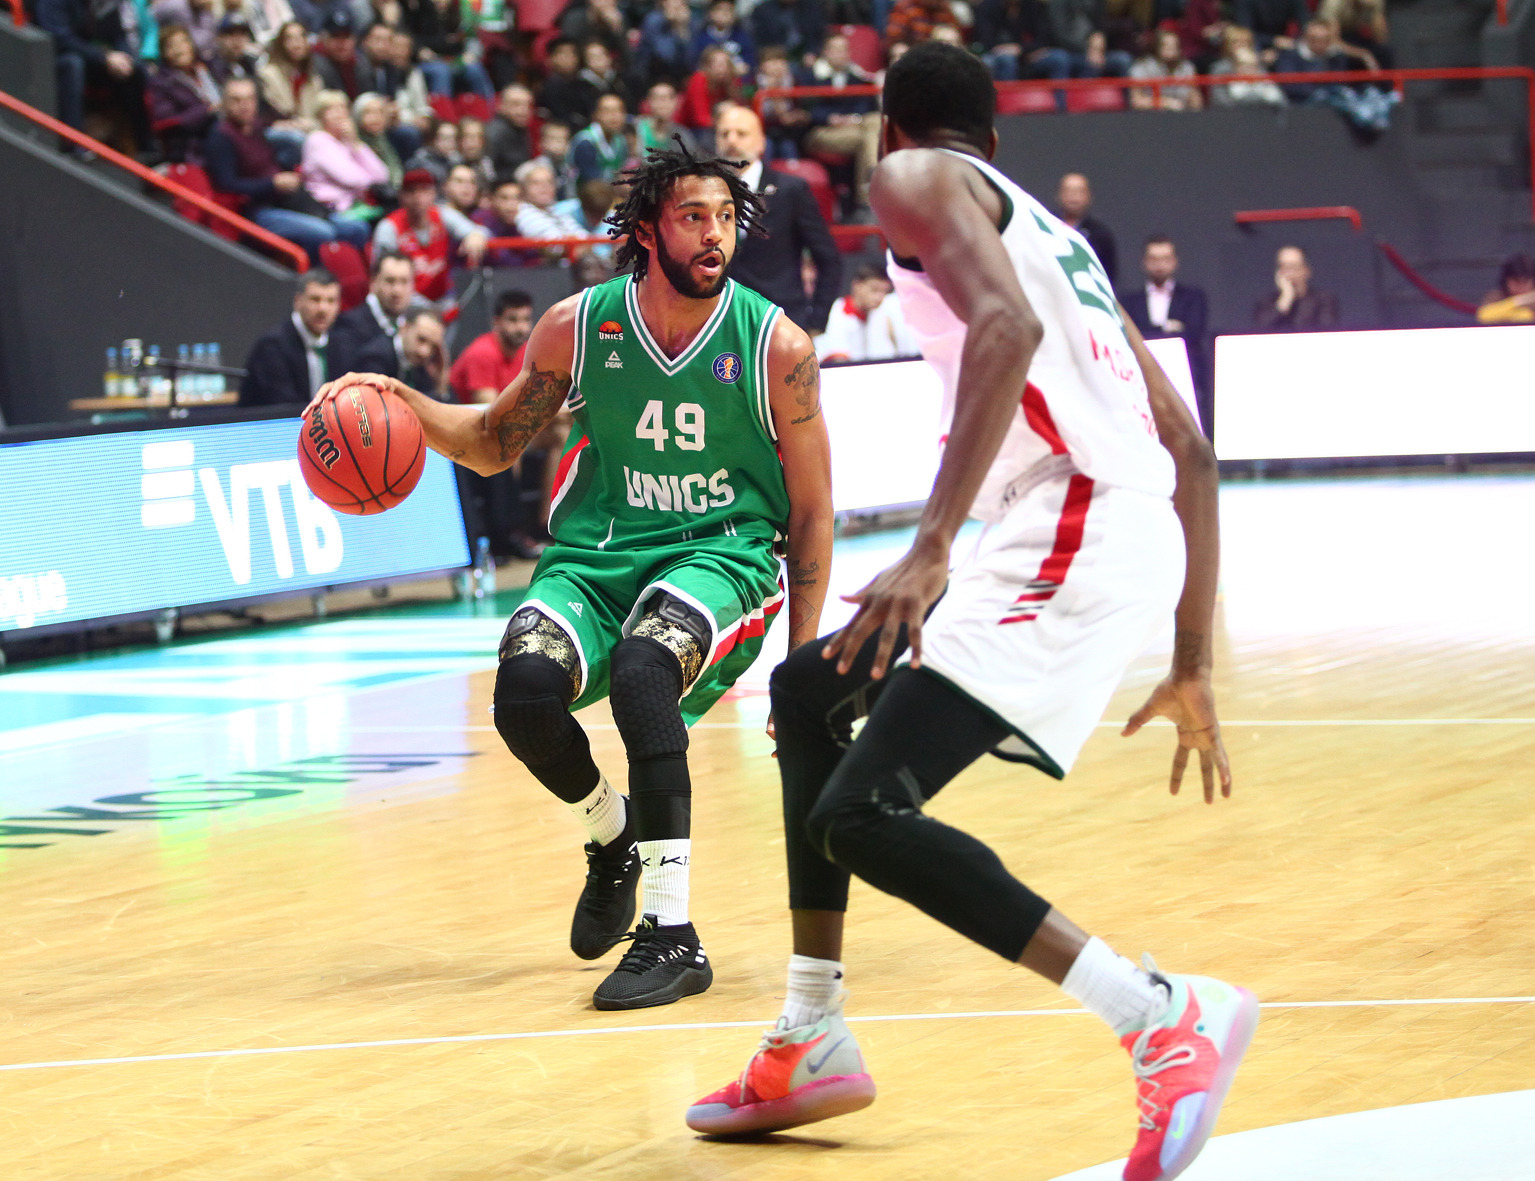 UNICS Shuts Down Lokomotiv In Rivalry Win